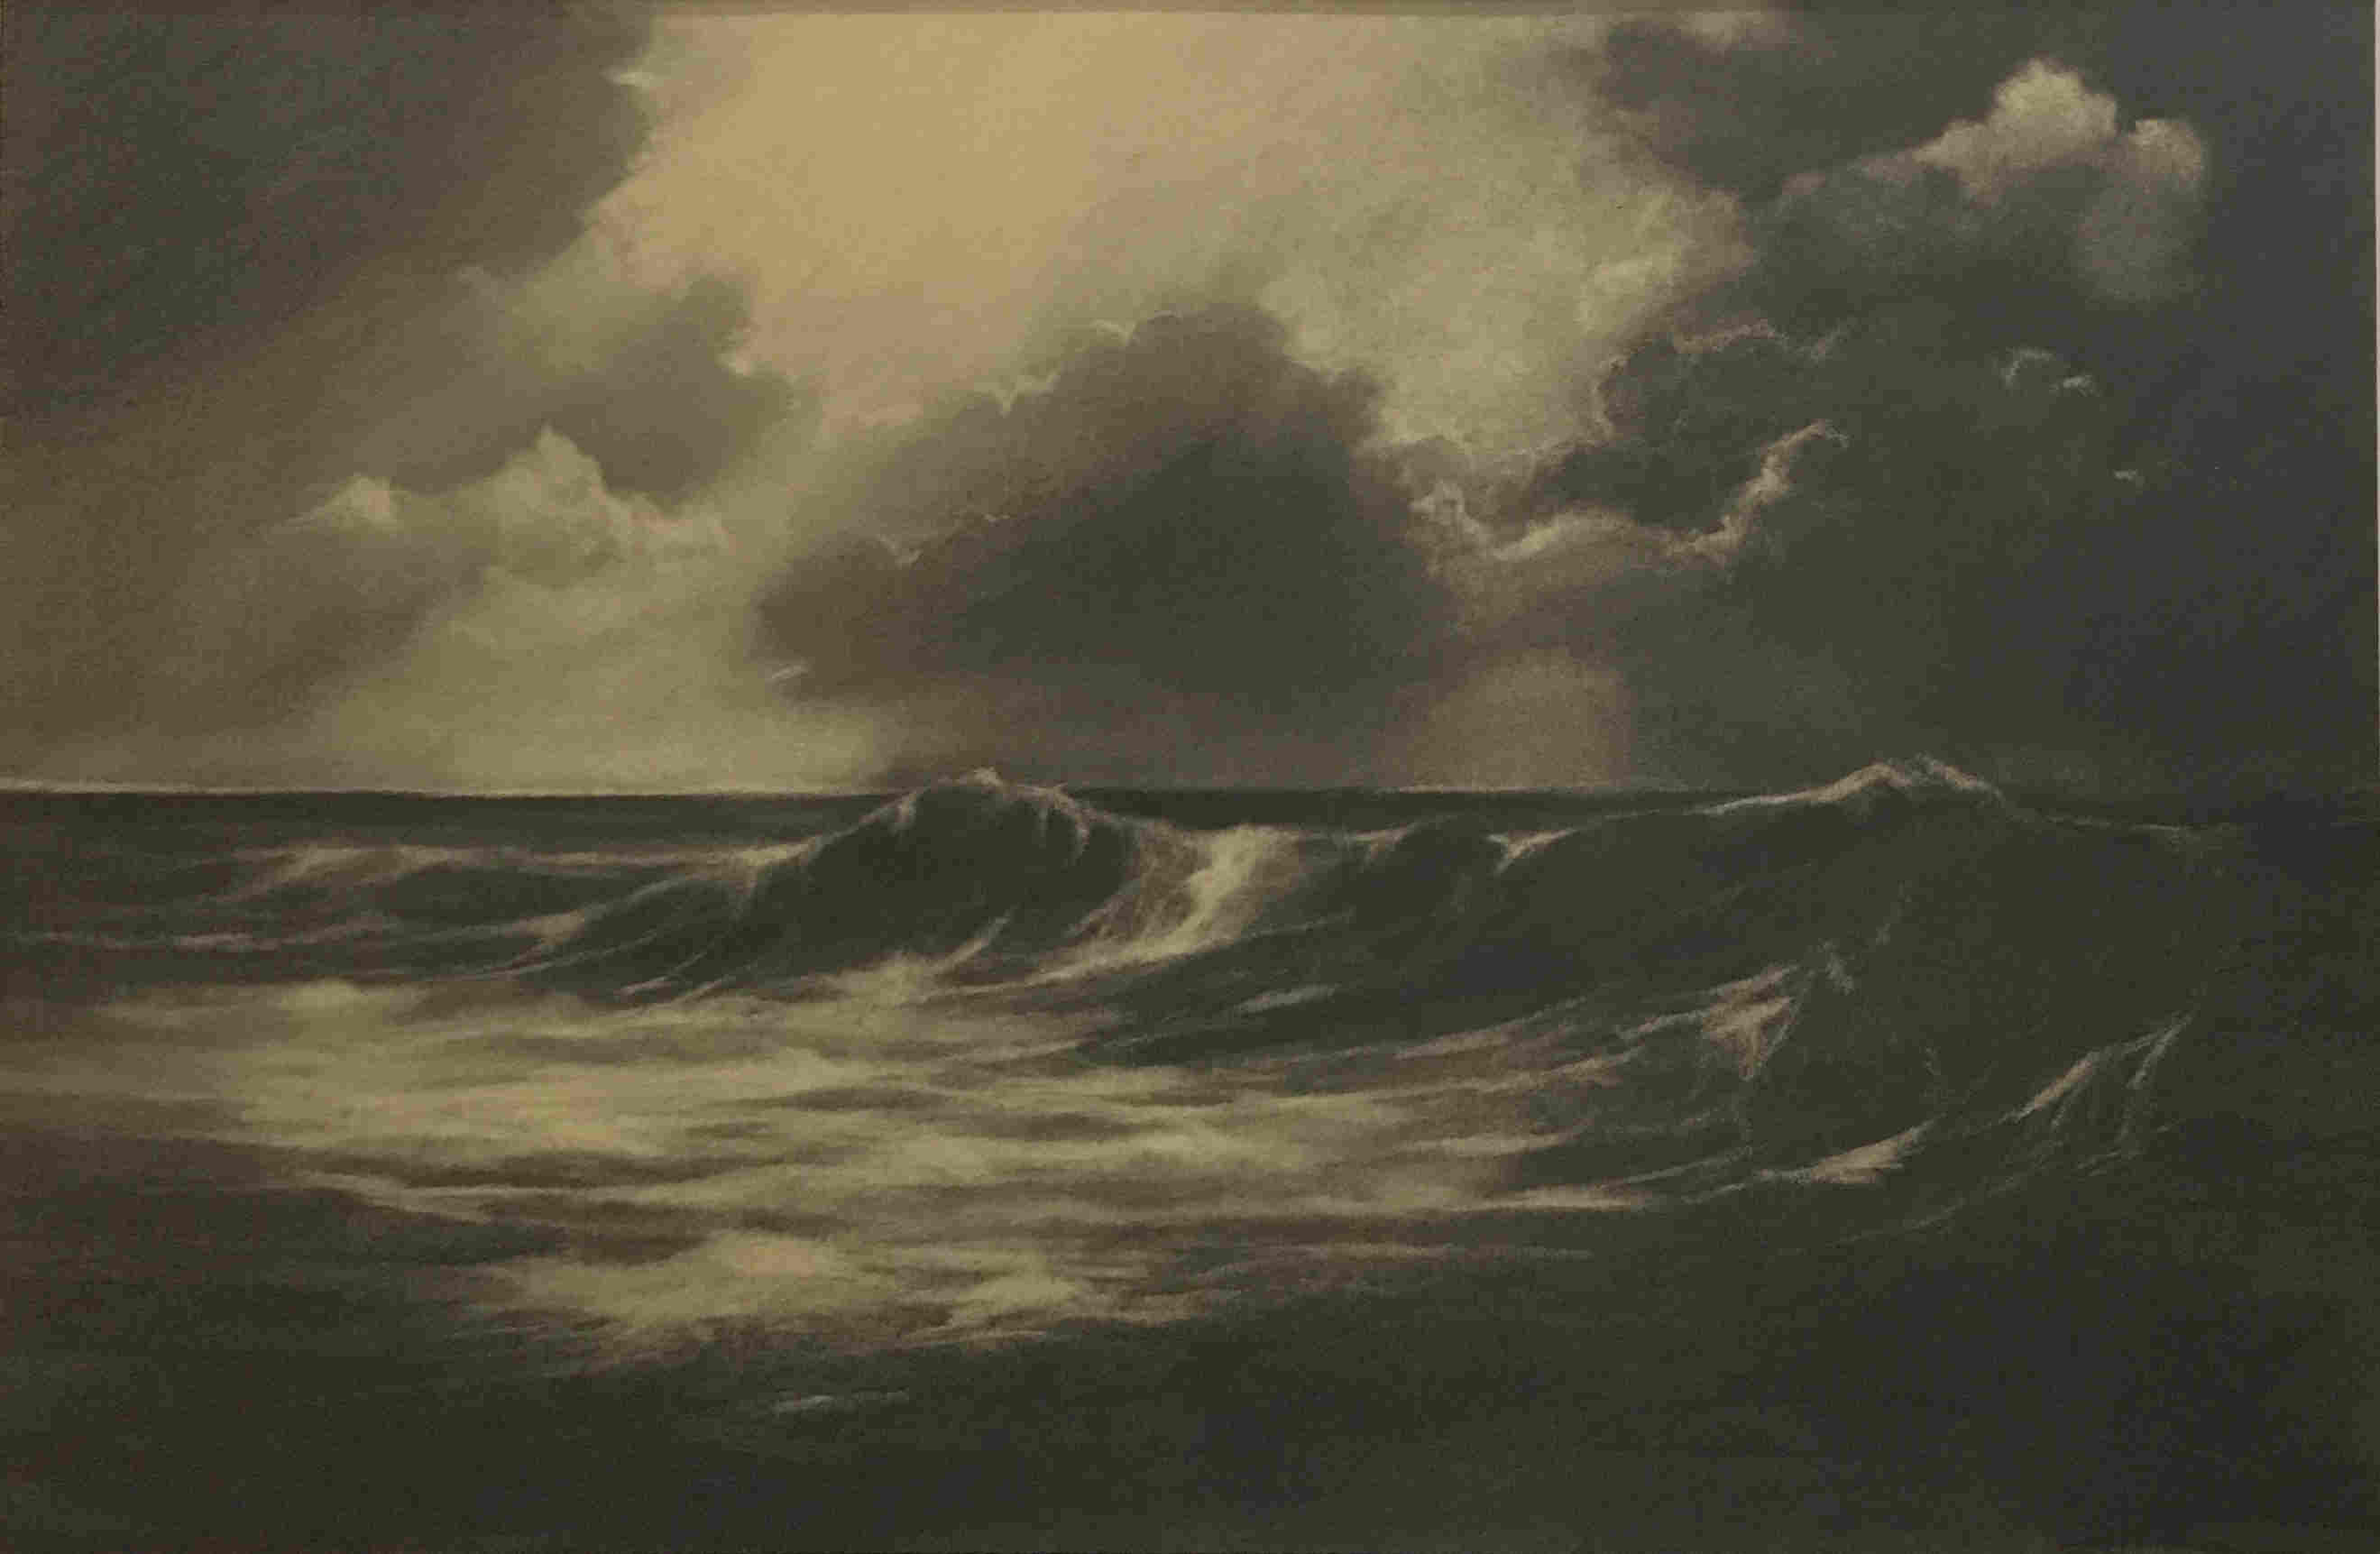 'Dark Wave' by artist Alan S Watson